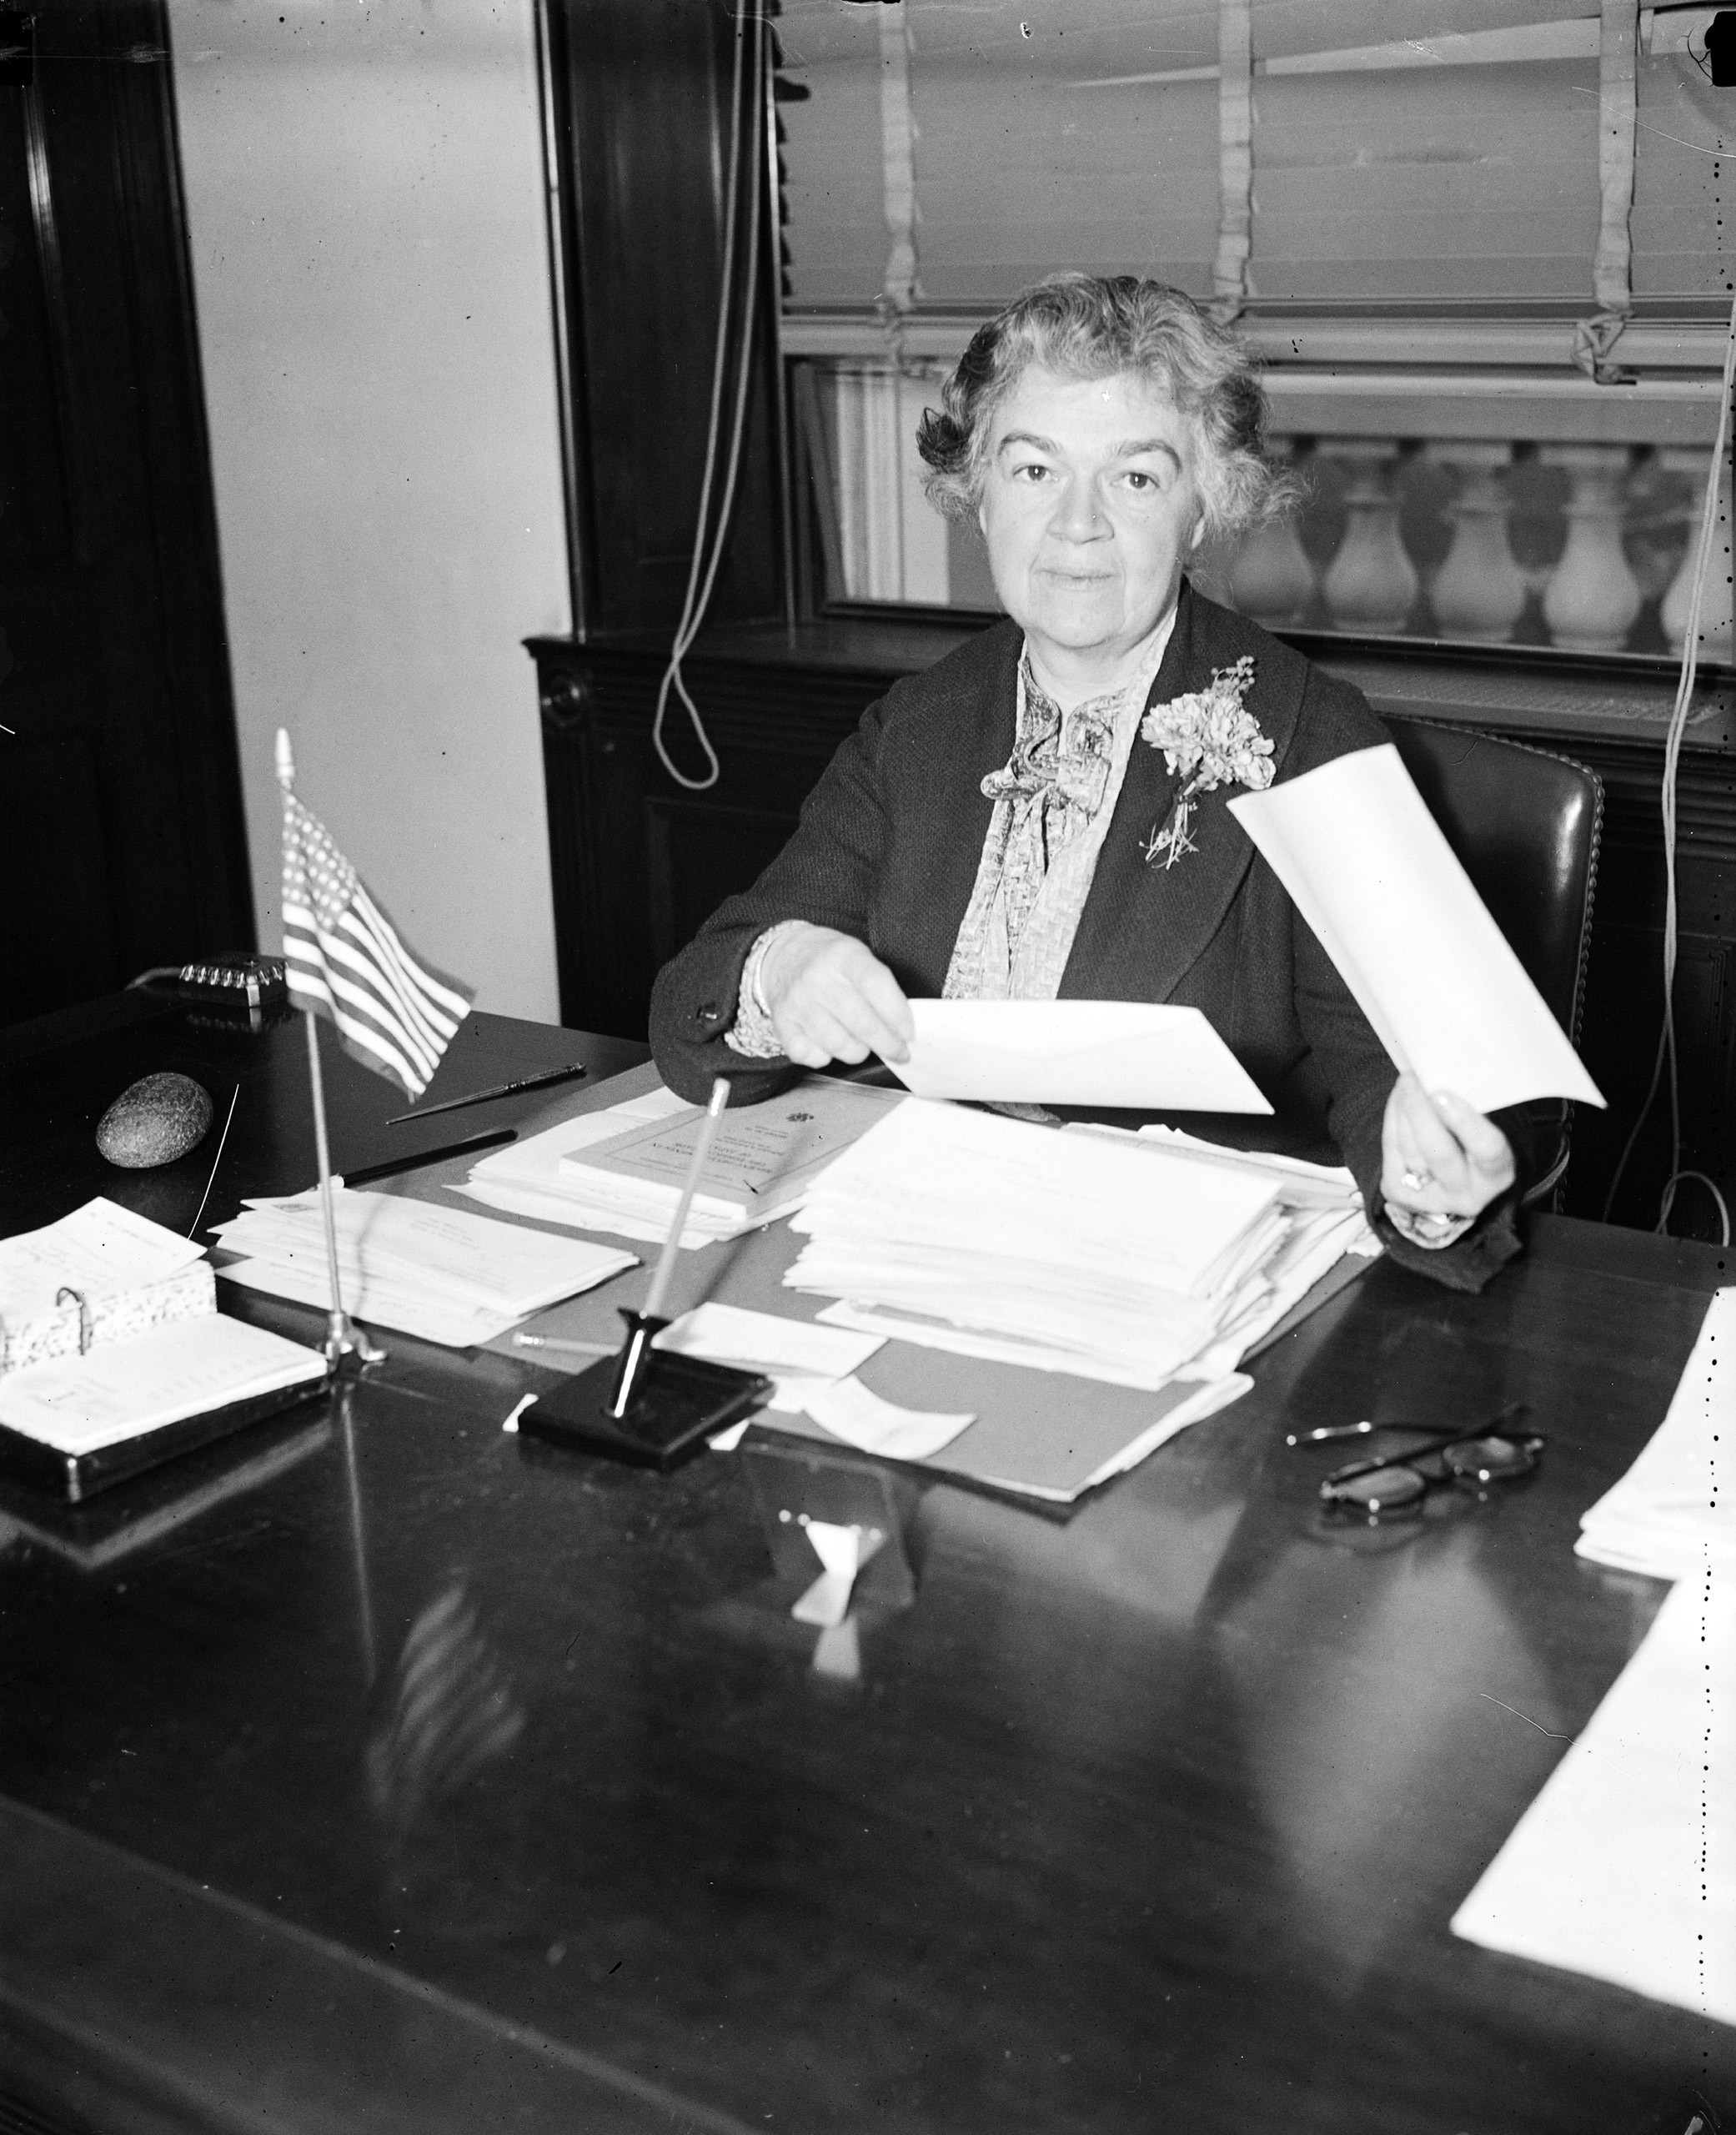 Edith Nourse Rogers at her desk, 1936.